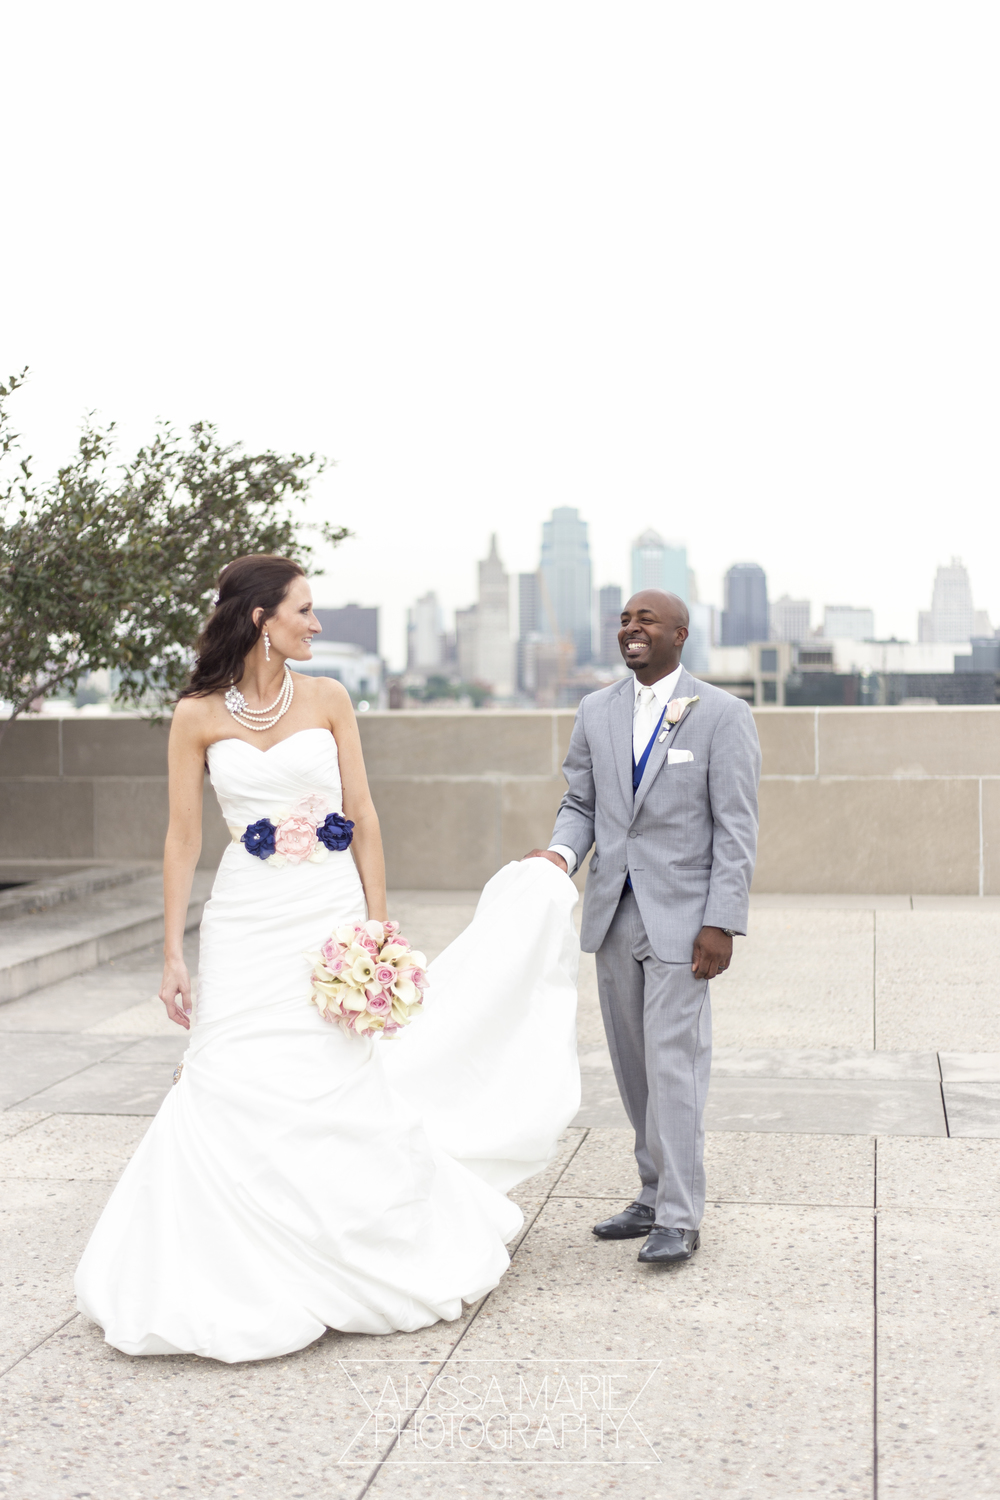 Kathy and Darnell-12.jpg